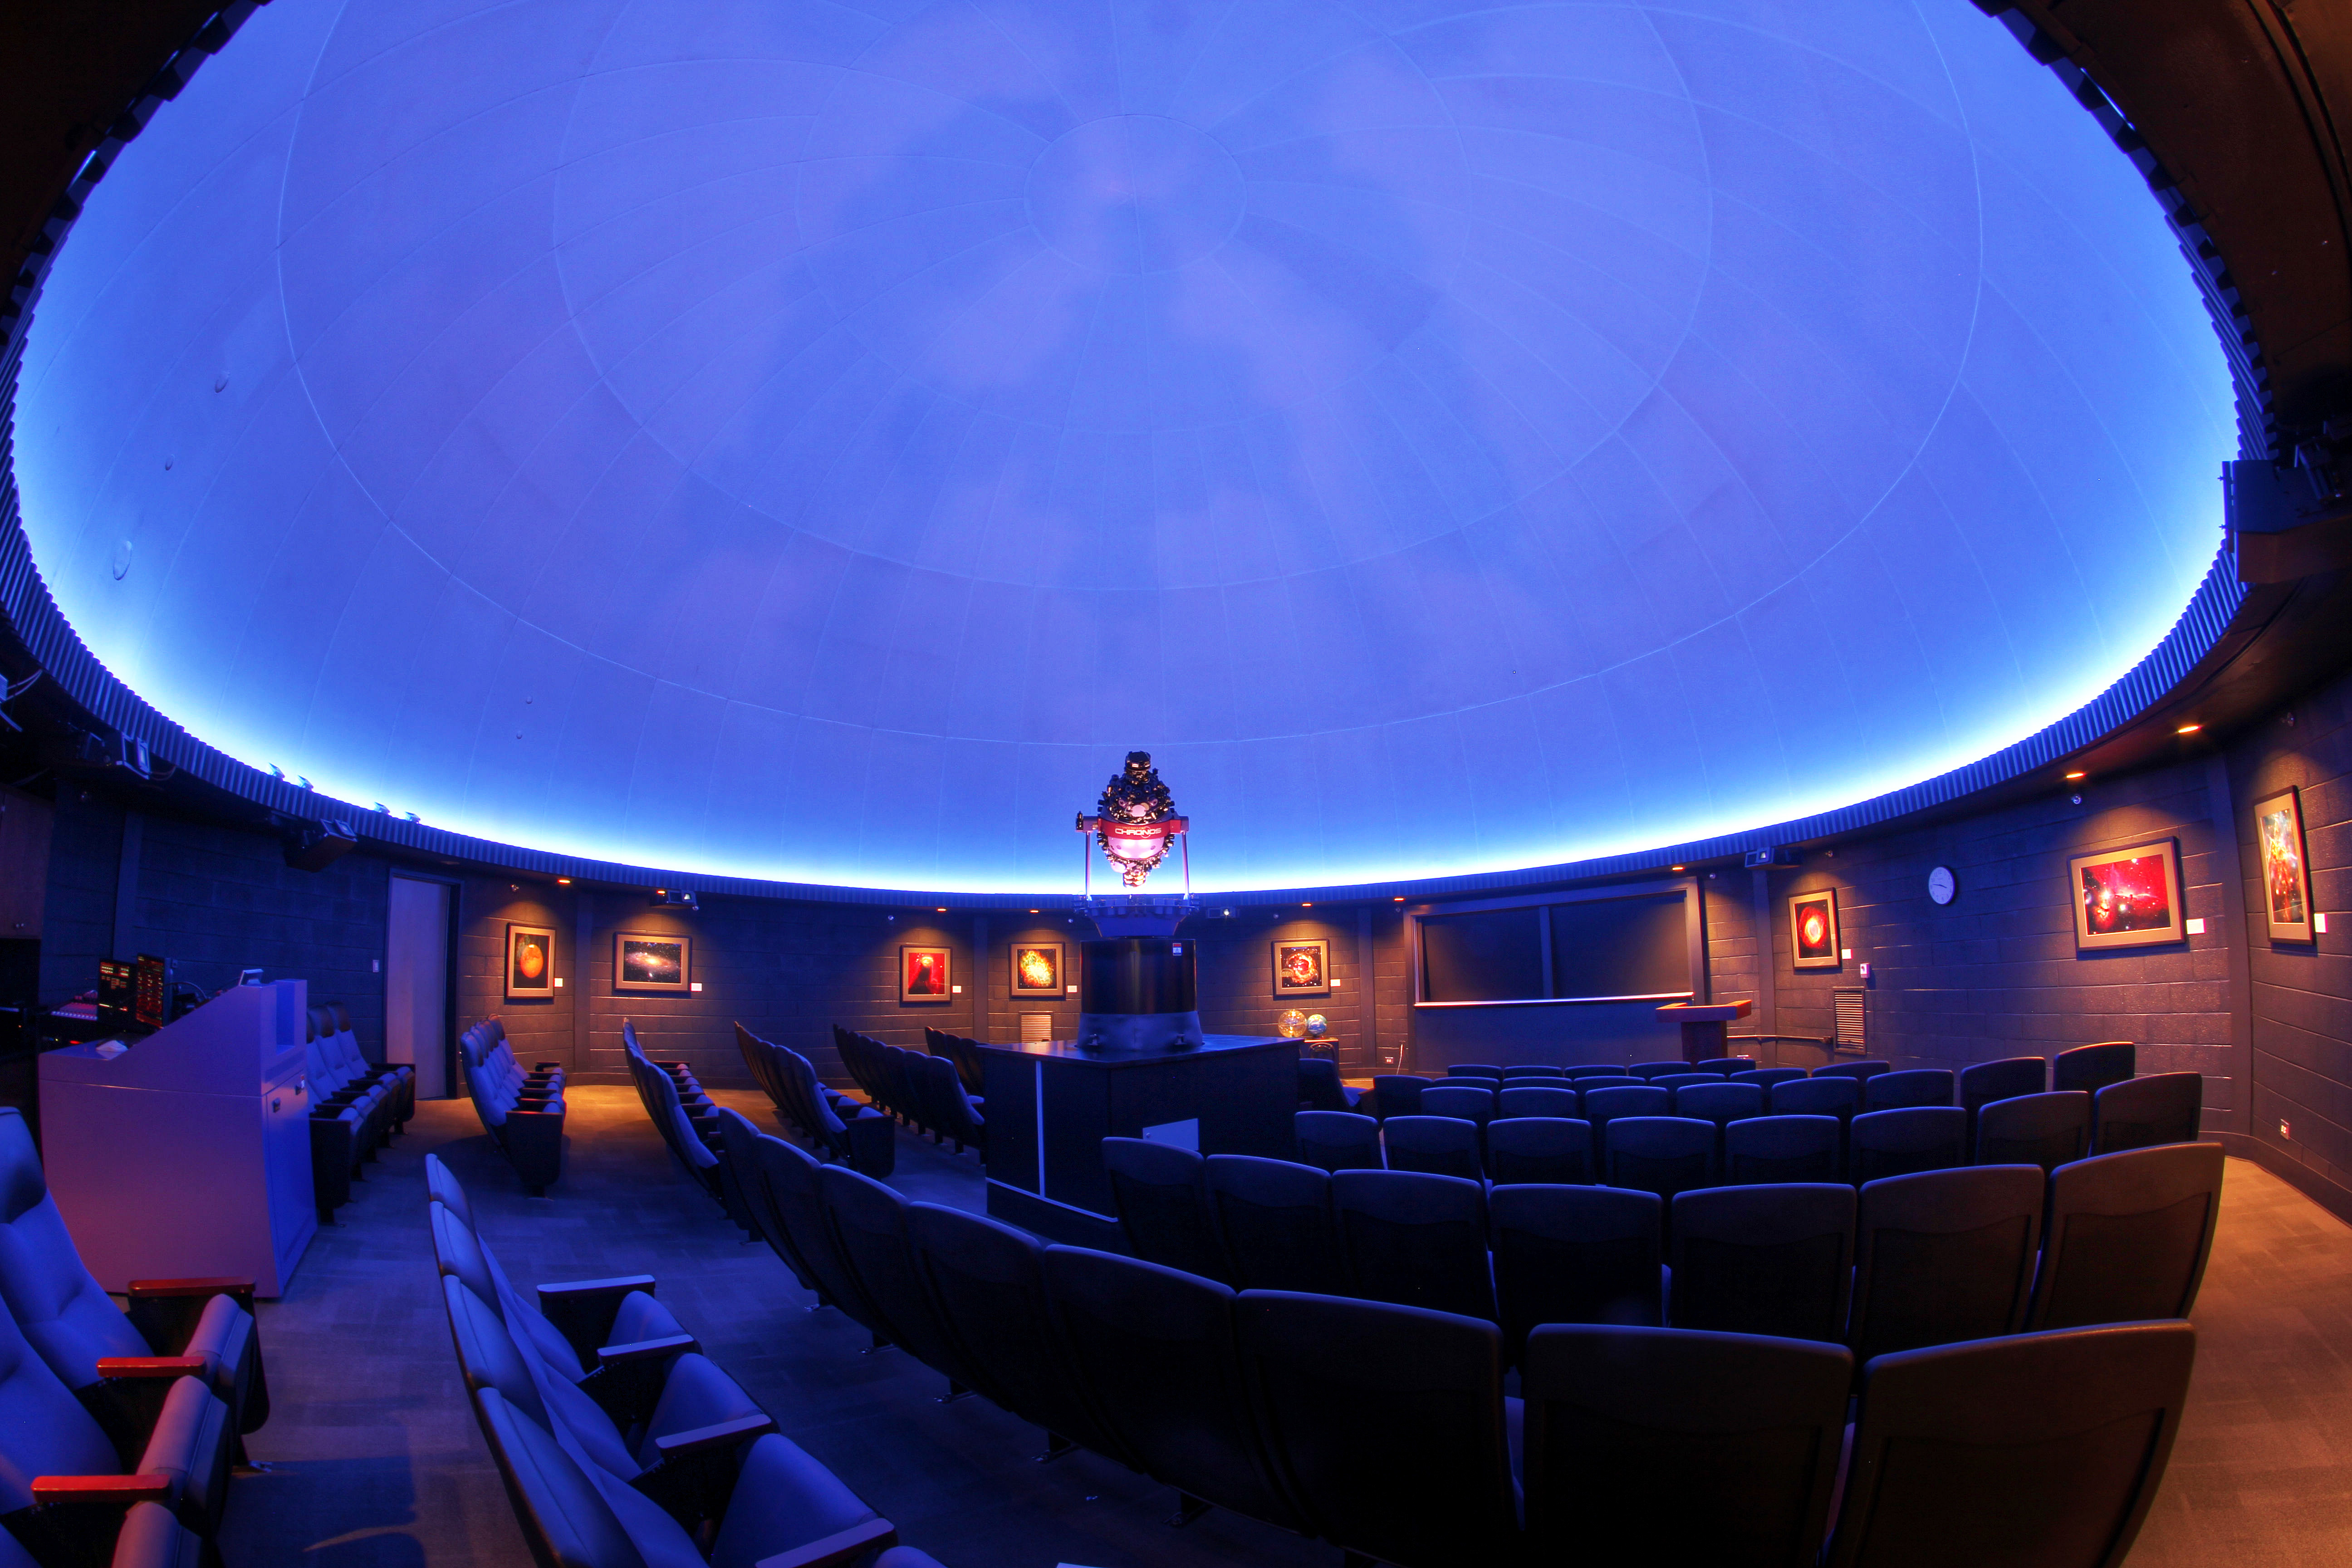 Theater dome with projector